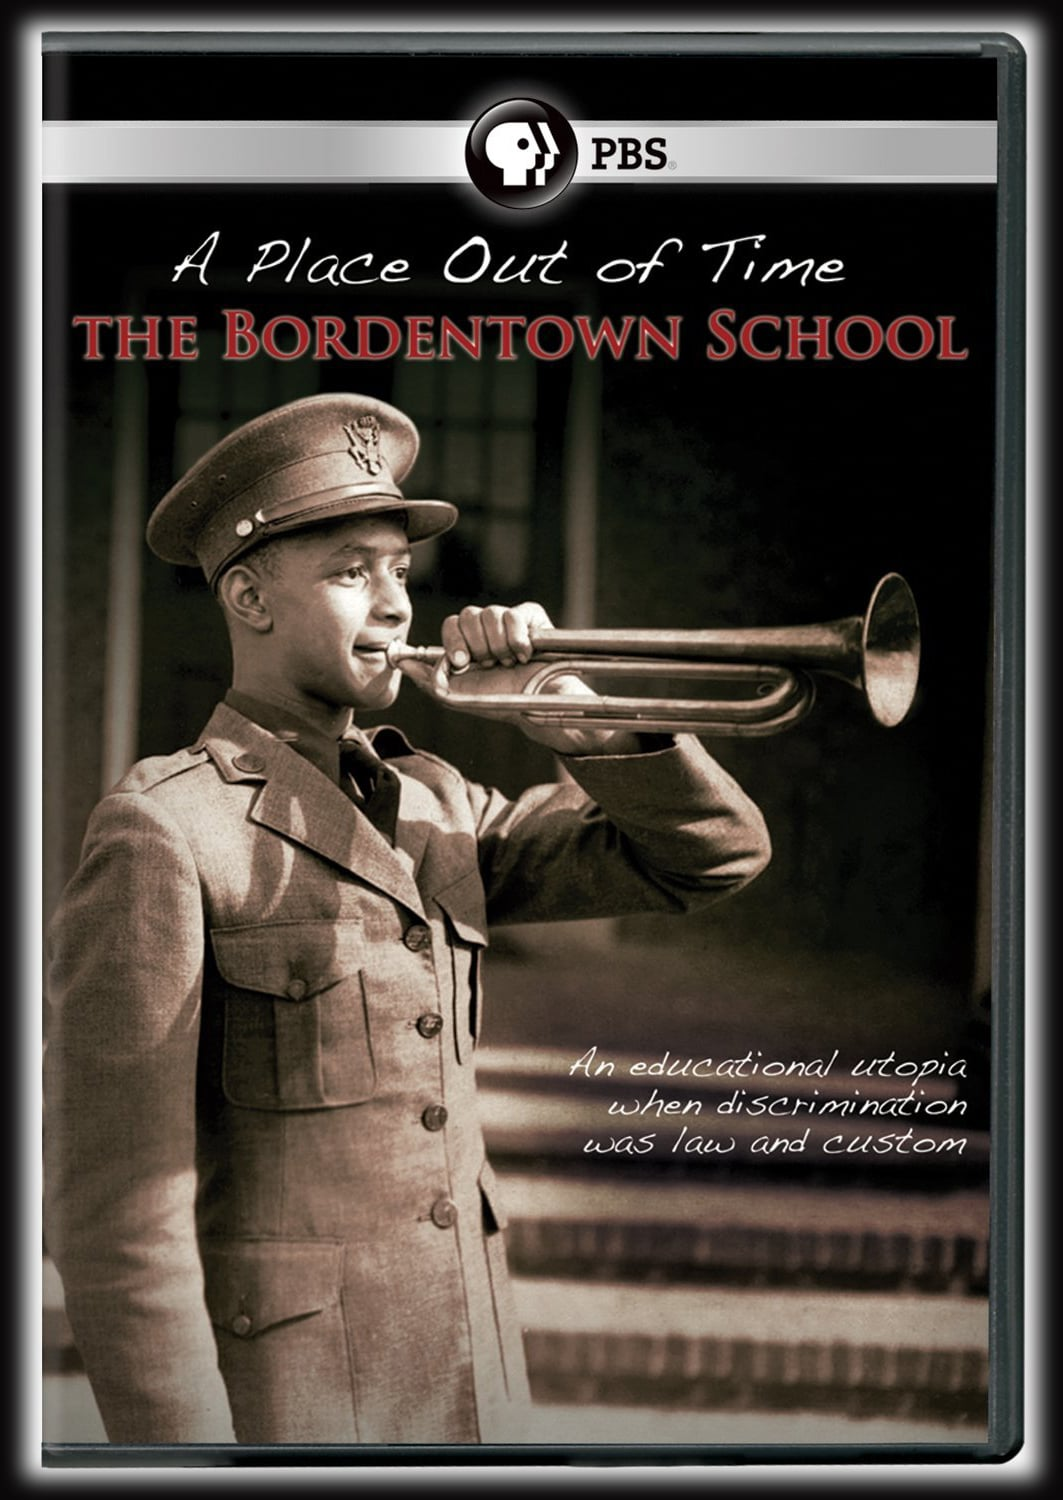 A PLACE OUT OF TIME THE BORDENTOWN SCHOOL DVD